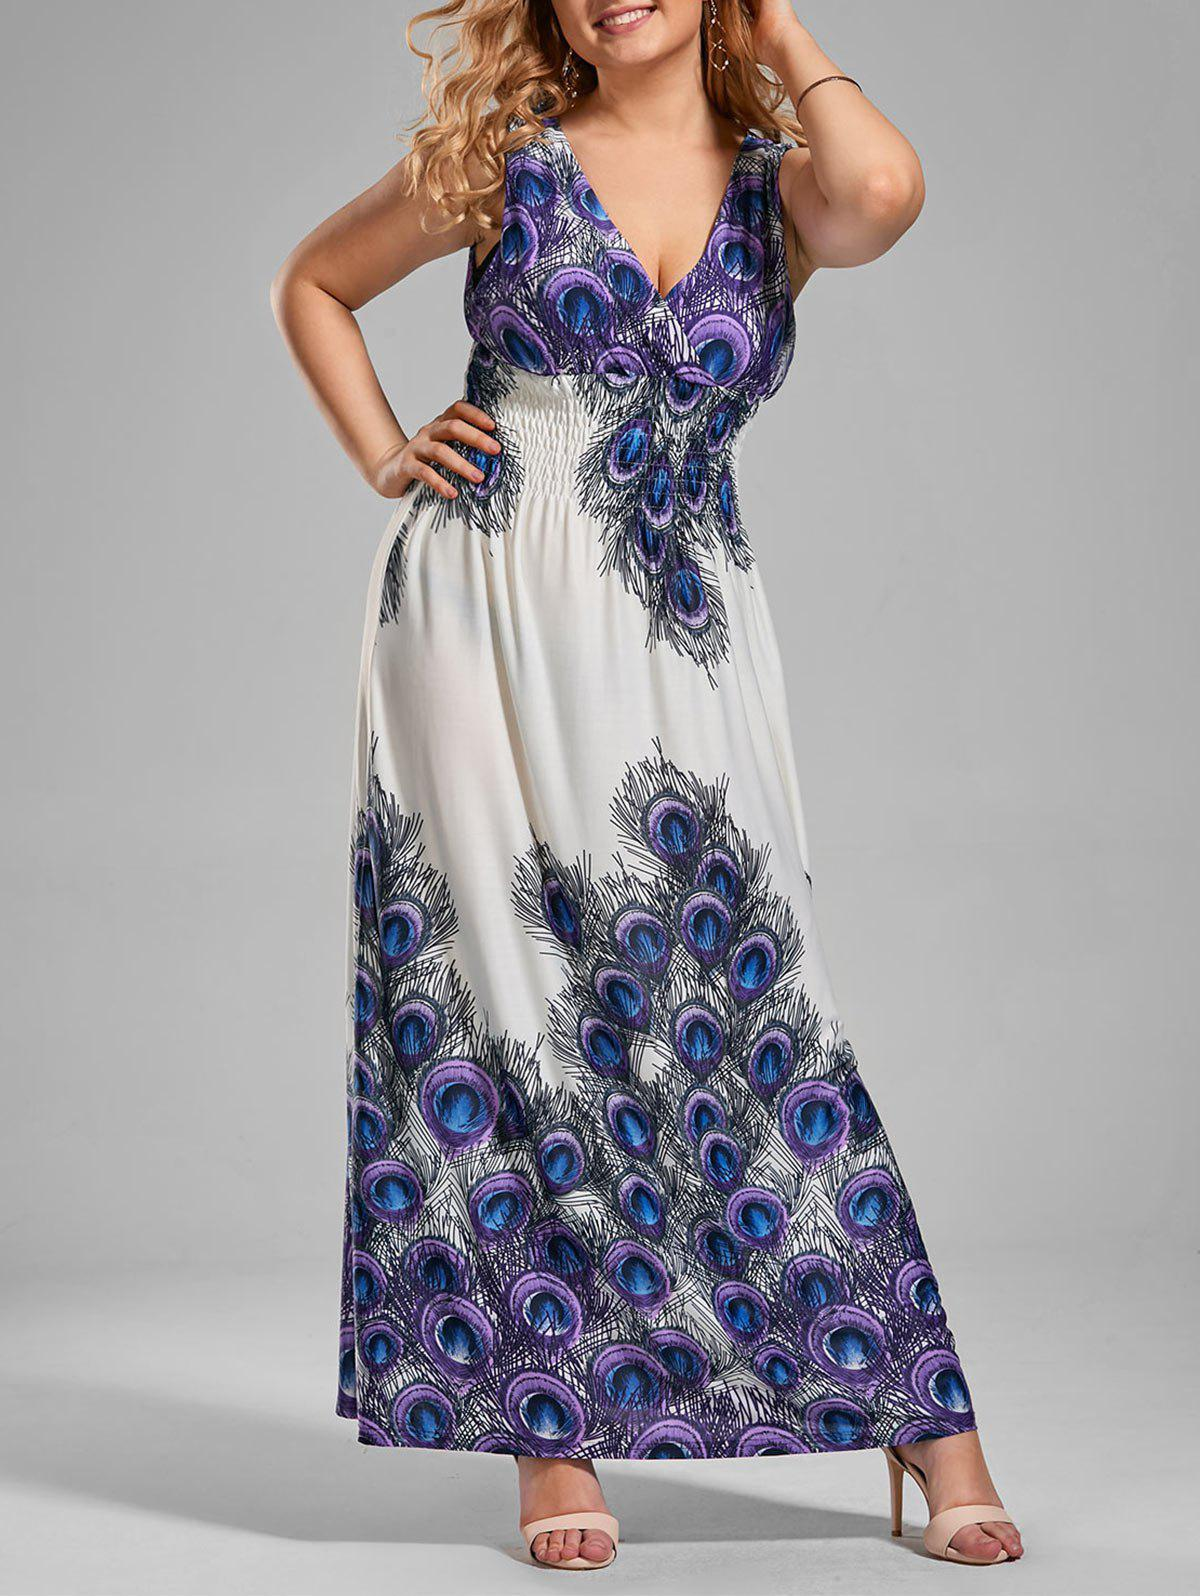 Peacock Feather Print Plus Size V Neck Maxi DressWOMEN<br><br>Size: 6XL; Color: MULTI; Style: Cute; Material: Polyester; Silhouette: A-Line; Dresses Length: Ankle-Length; Neckline: V-Neck; Sleeve Length: Sleeveless; Waist: Empire; Pattern Type: Feather,Print; With Belt: No; Season: Summer; Weight: 0.3000kg; Package Contents: 1 x Dress;